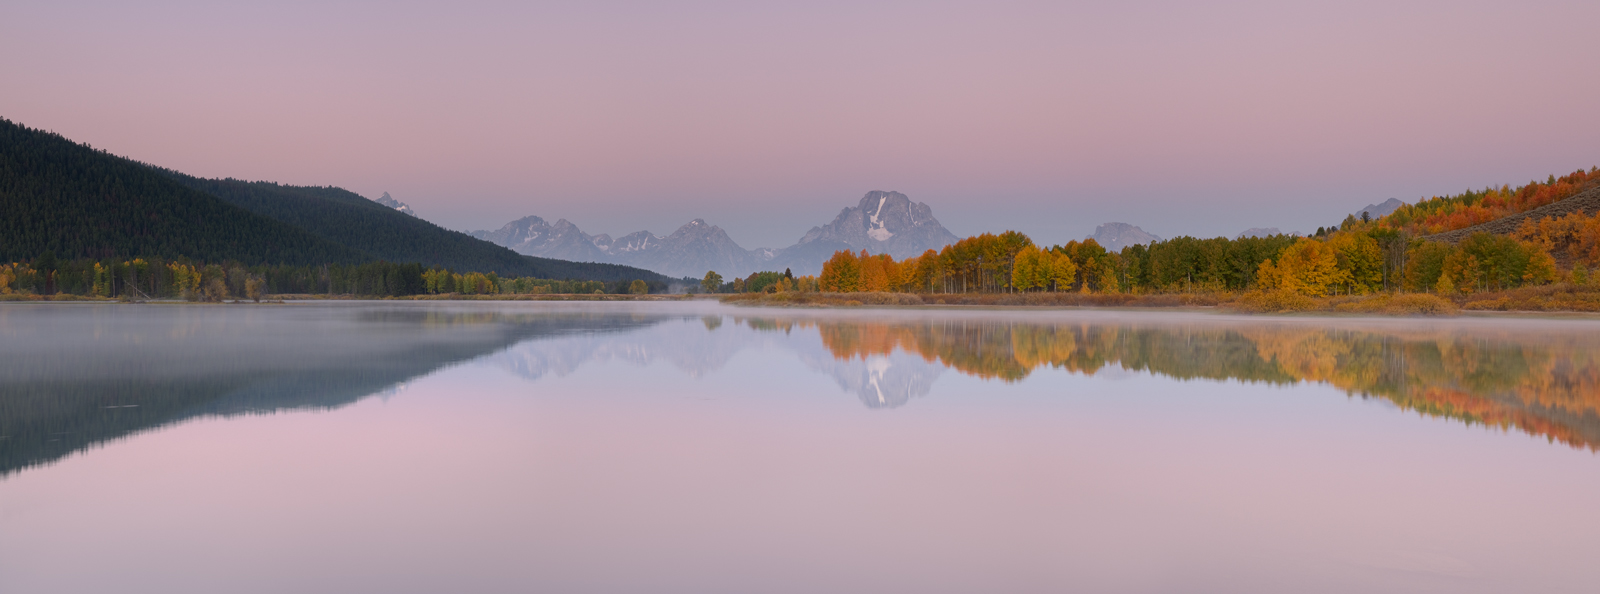 Panoramic, landscape, fall colours, autumn, snake river, oxbow bend, sunrise, Grand Teton, Wyoming, panoramique, paysage, automne, lever de soleil, photo